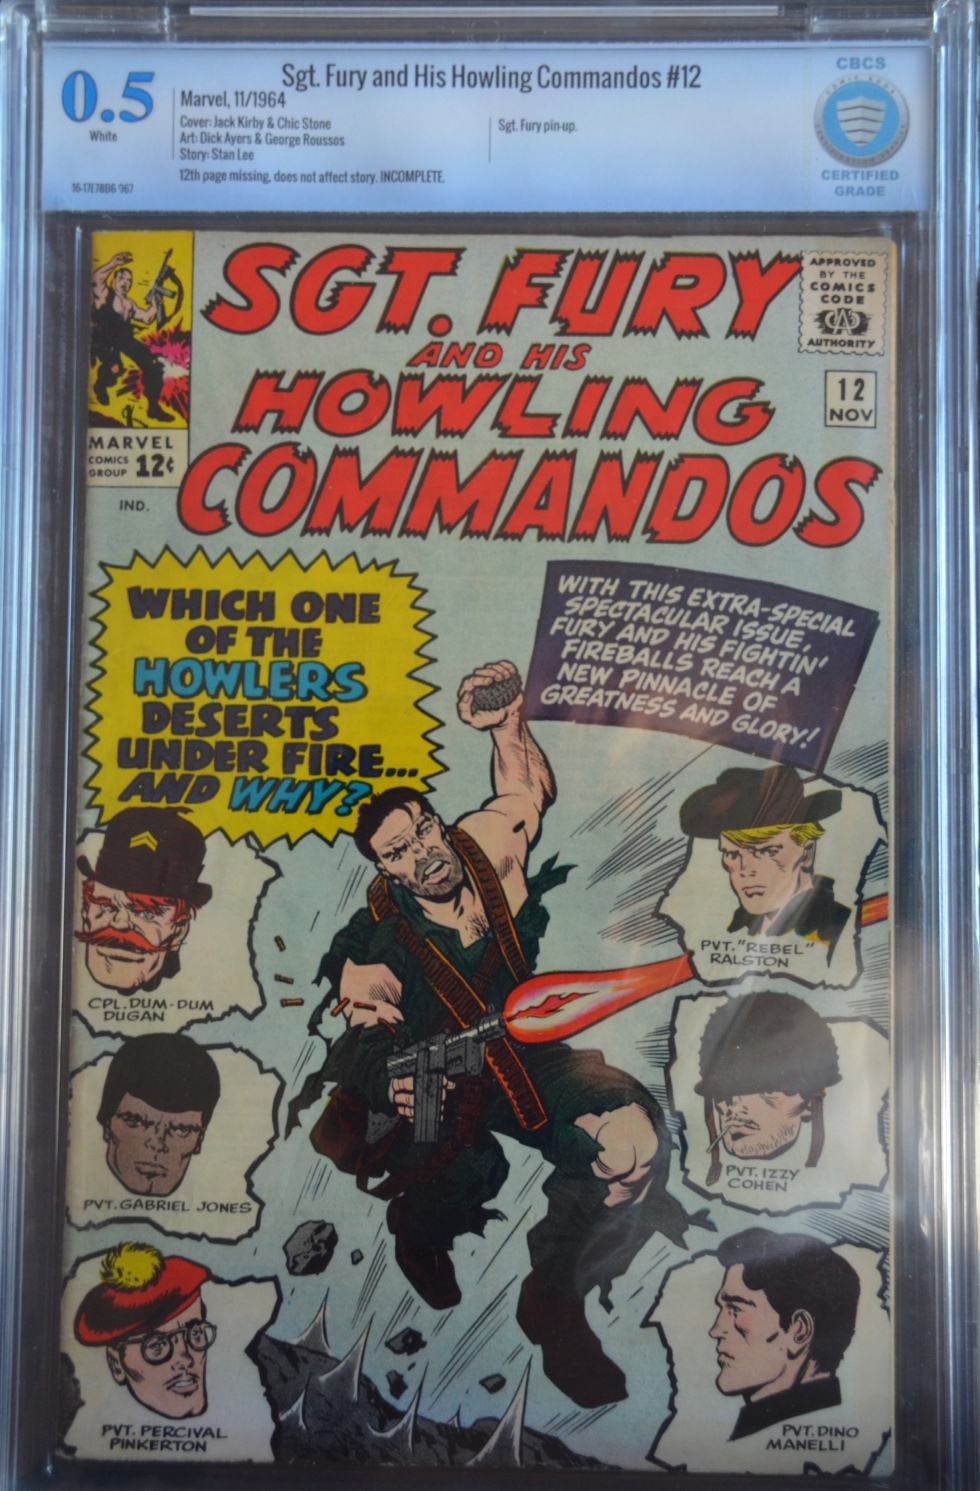 Sgt. Fury and His Howling Commandos #12 CGC 0.5